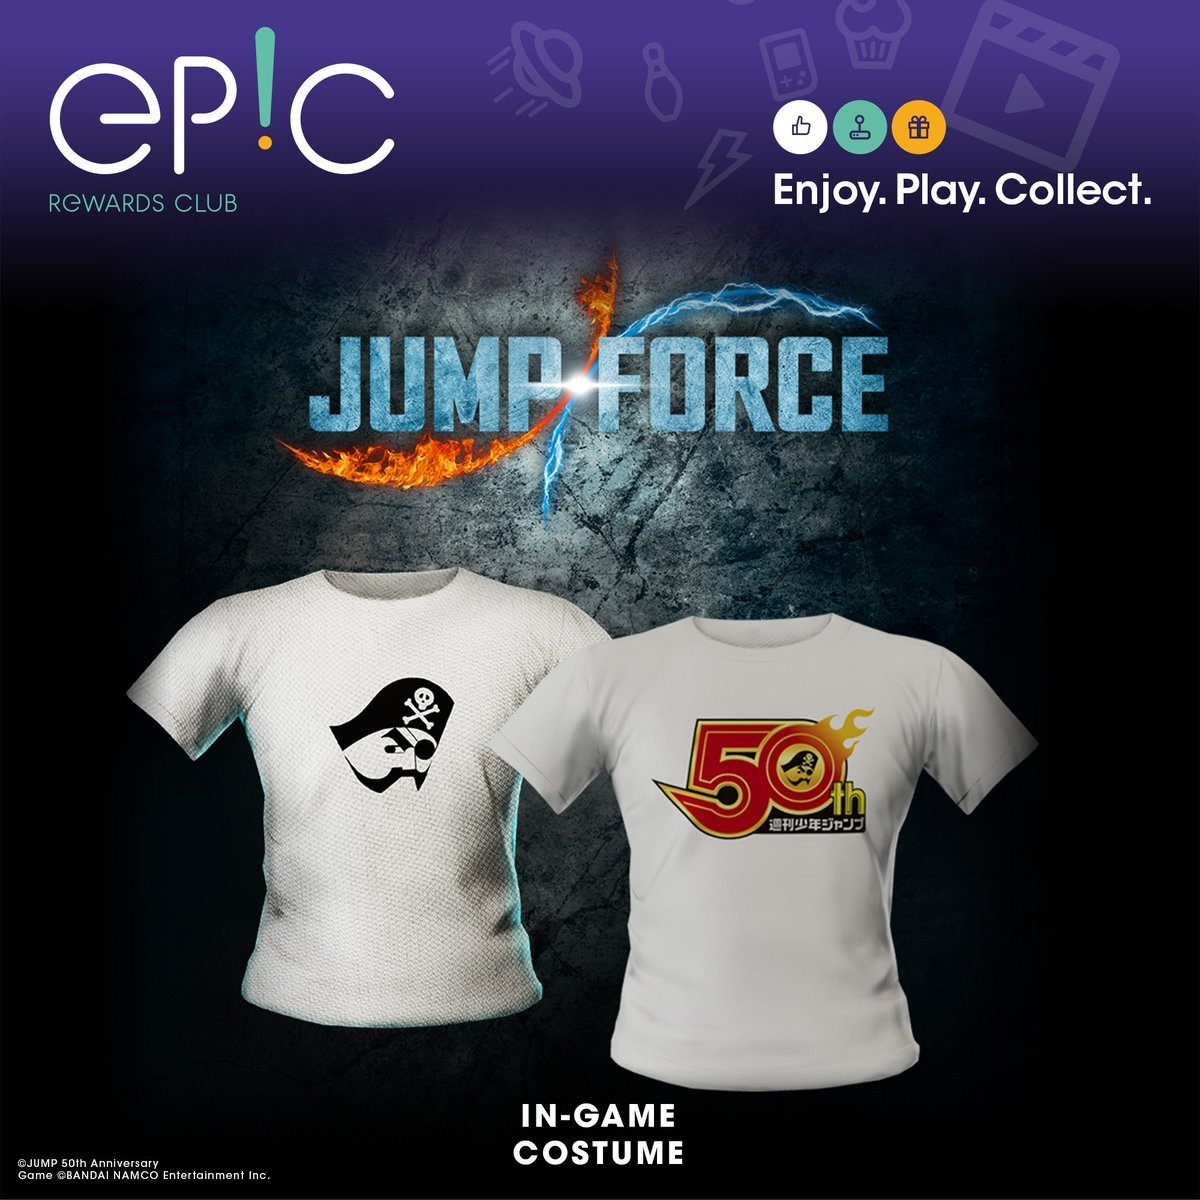 The EP!C Rewards Club has been given a complete facelift and welcomes you back now on https://club.bandainamcoent.eu Celebrate the release of JUMP FORCE by picking up these nice PS4 free DLC or make your choice from over 70 gifts (digital or physical) available!